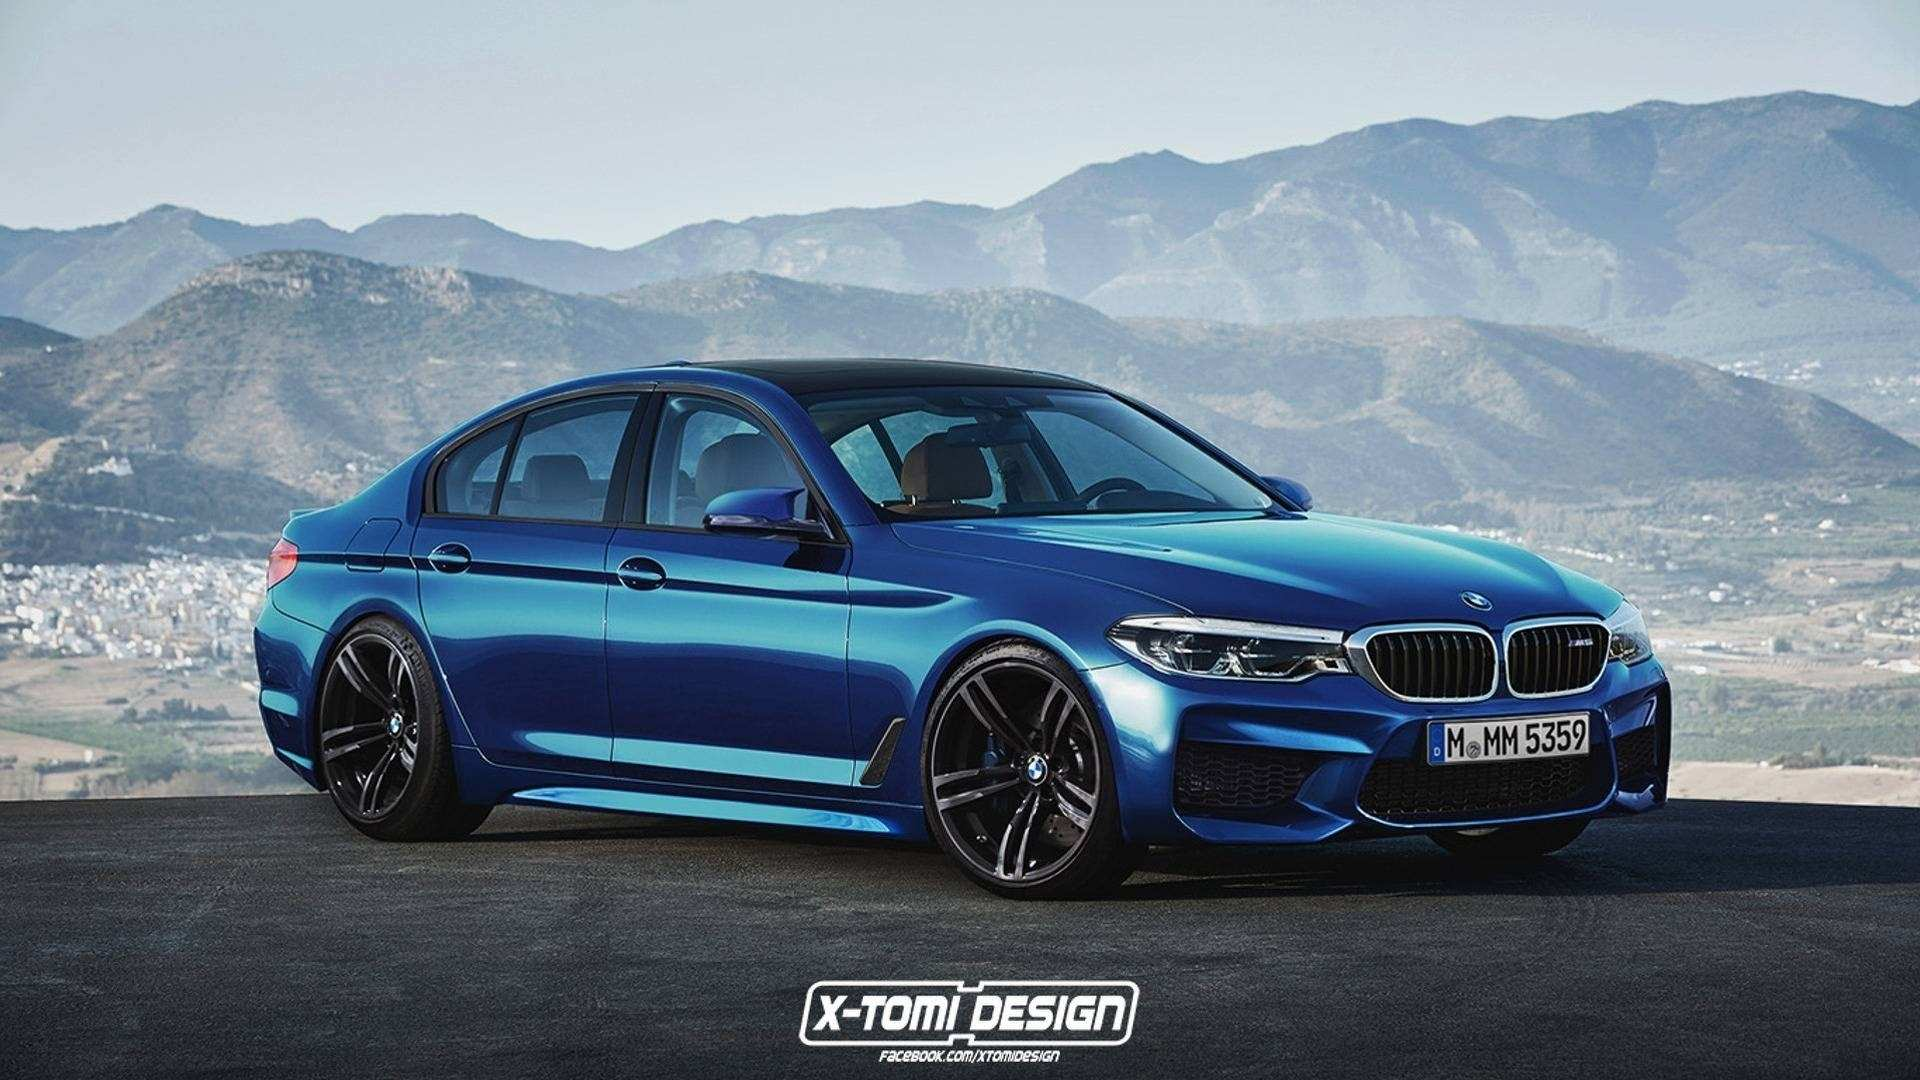 93 The Best 2019 BMW M5 Get New Engine System Release Date And Concept